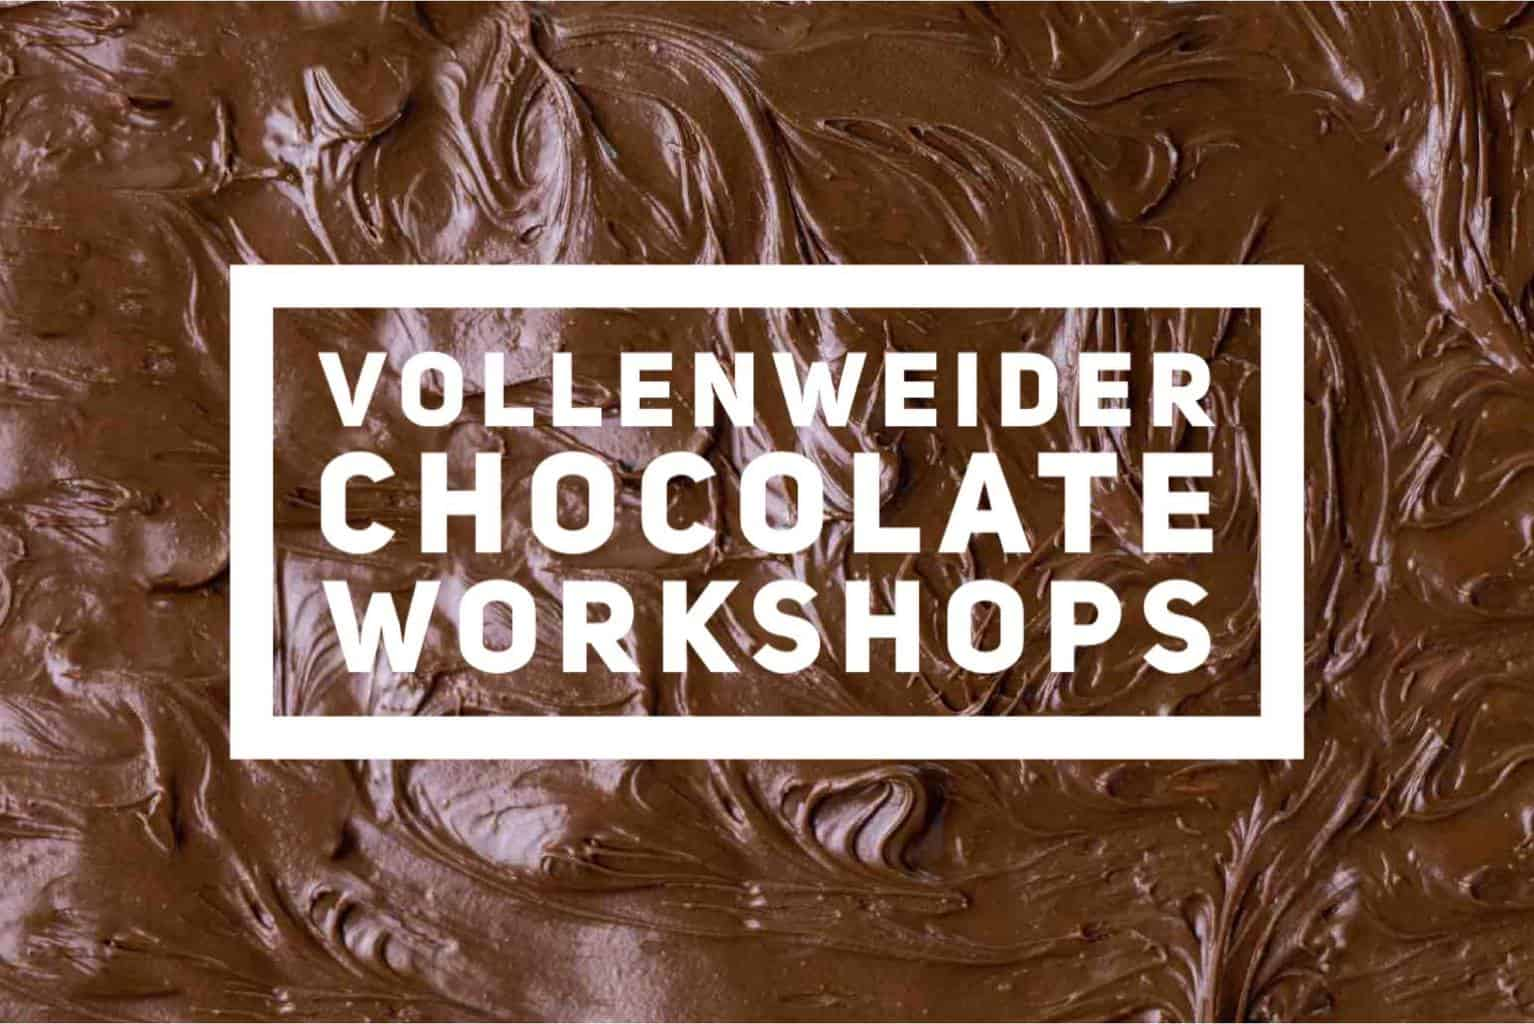 How About a Chocolate Workshop by Vollenweider?